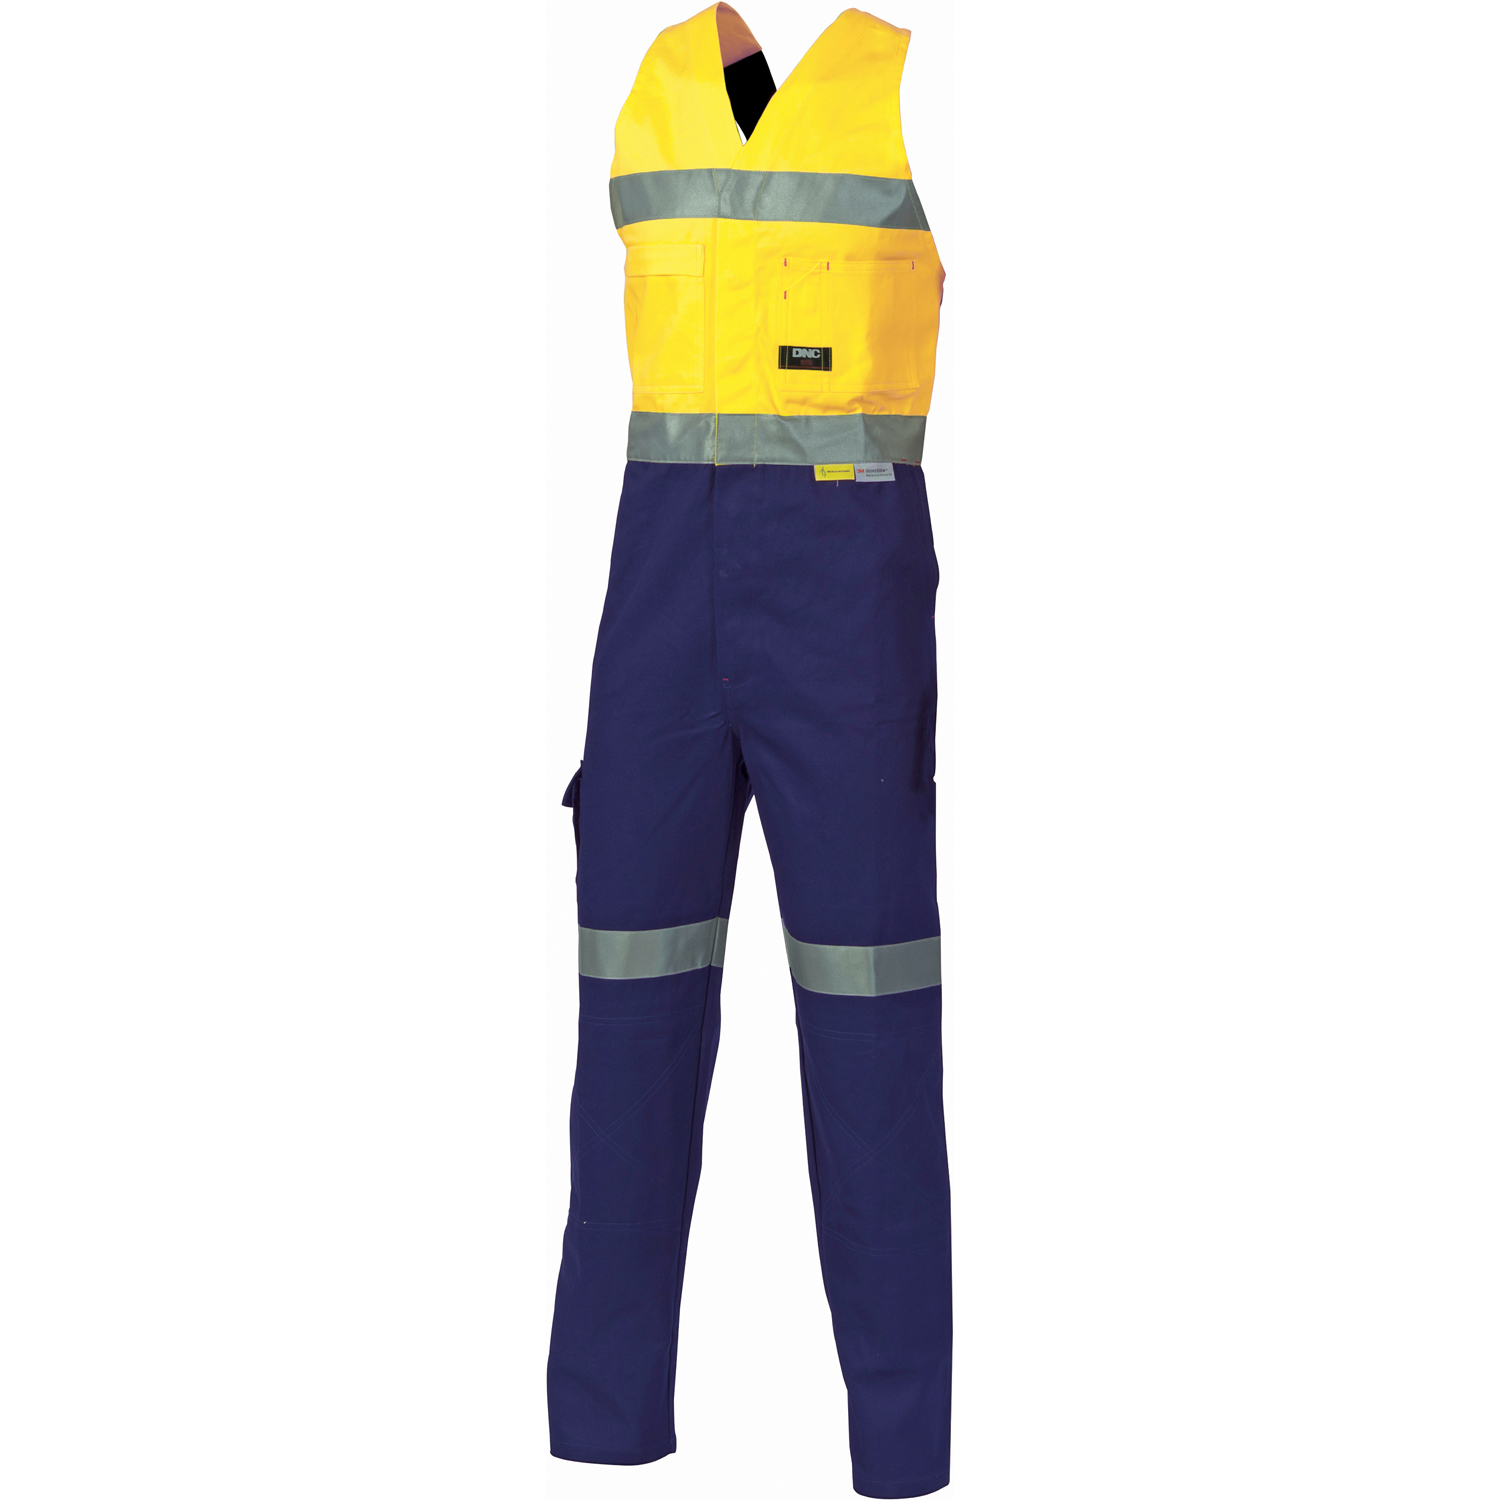 DNC 3857-311gsm HiVis Cotton Action Back Overall with 3M R/tape